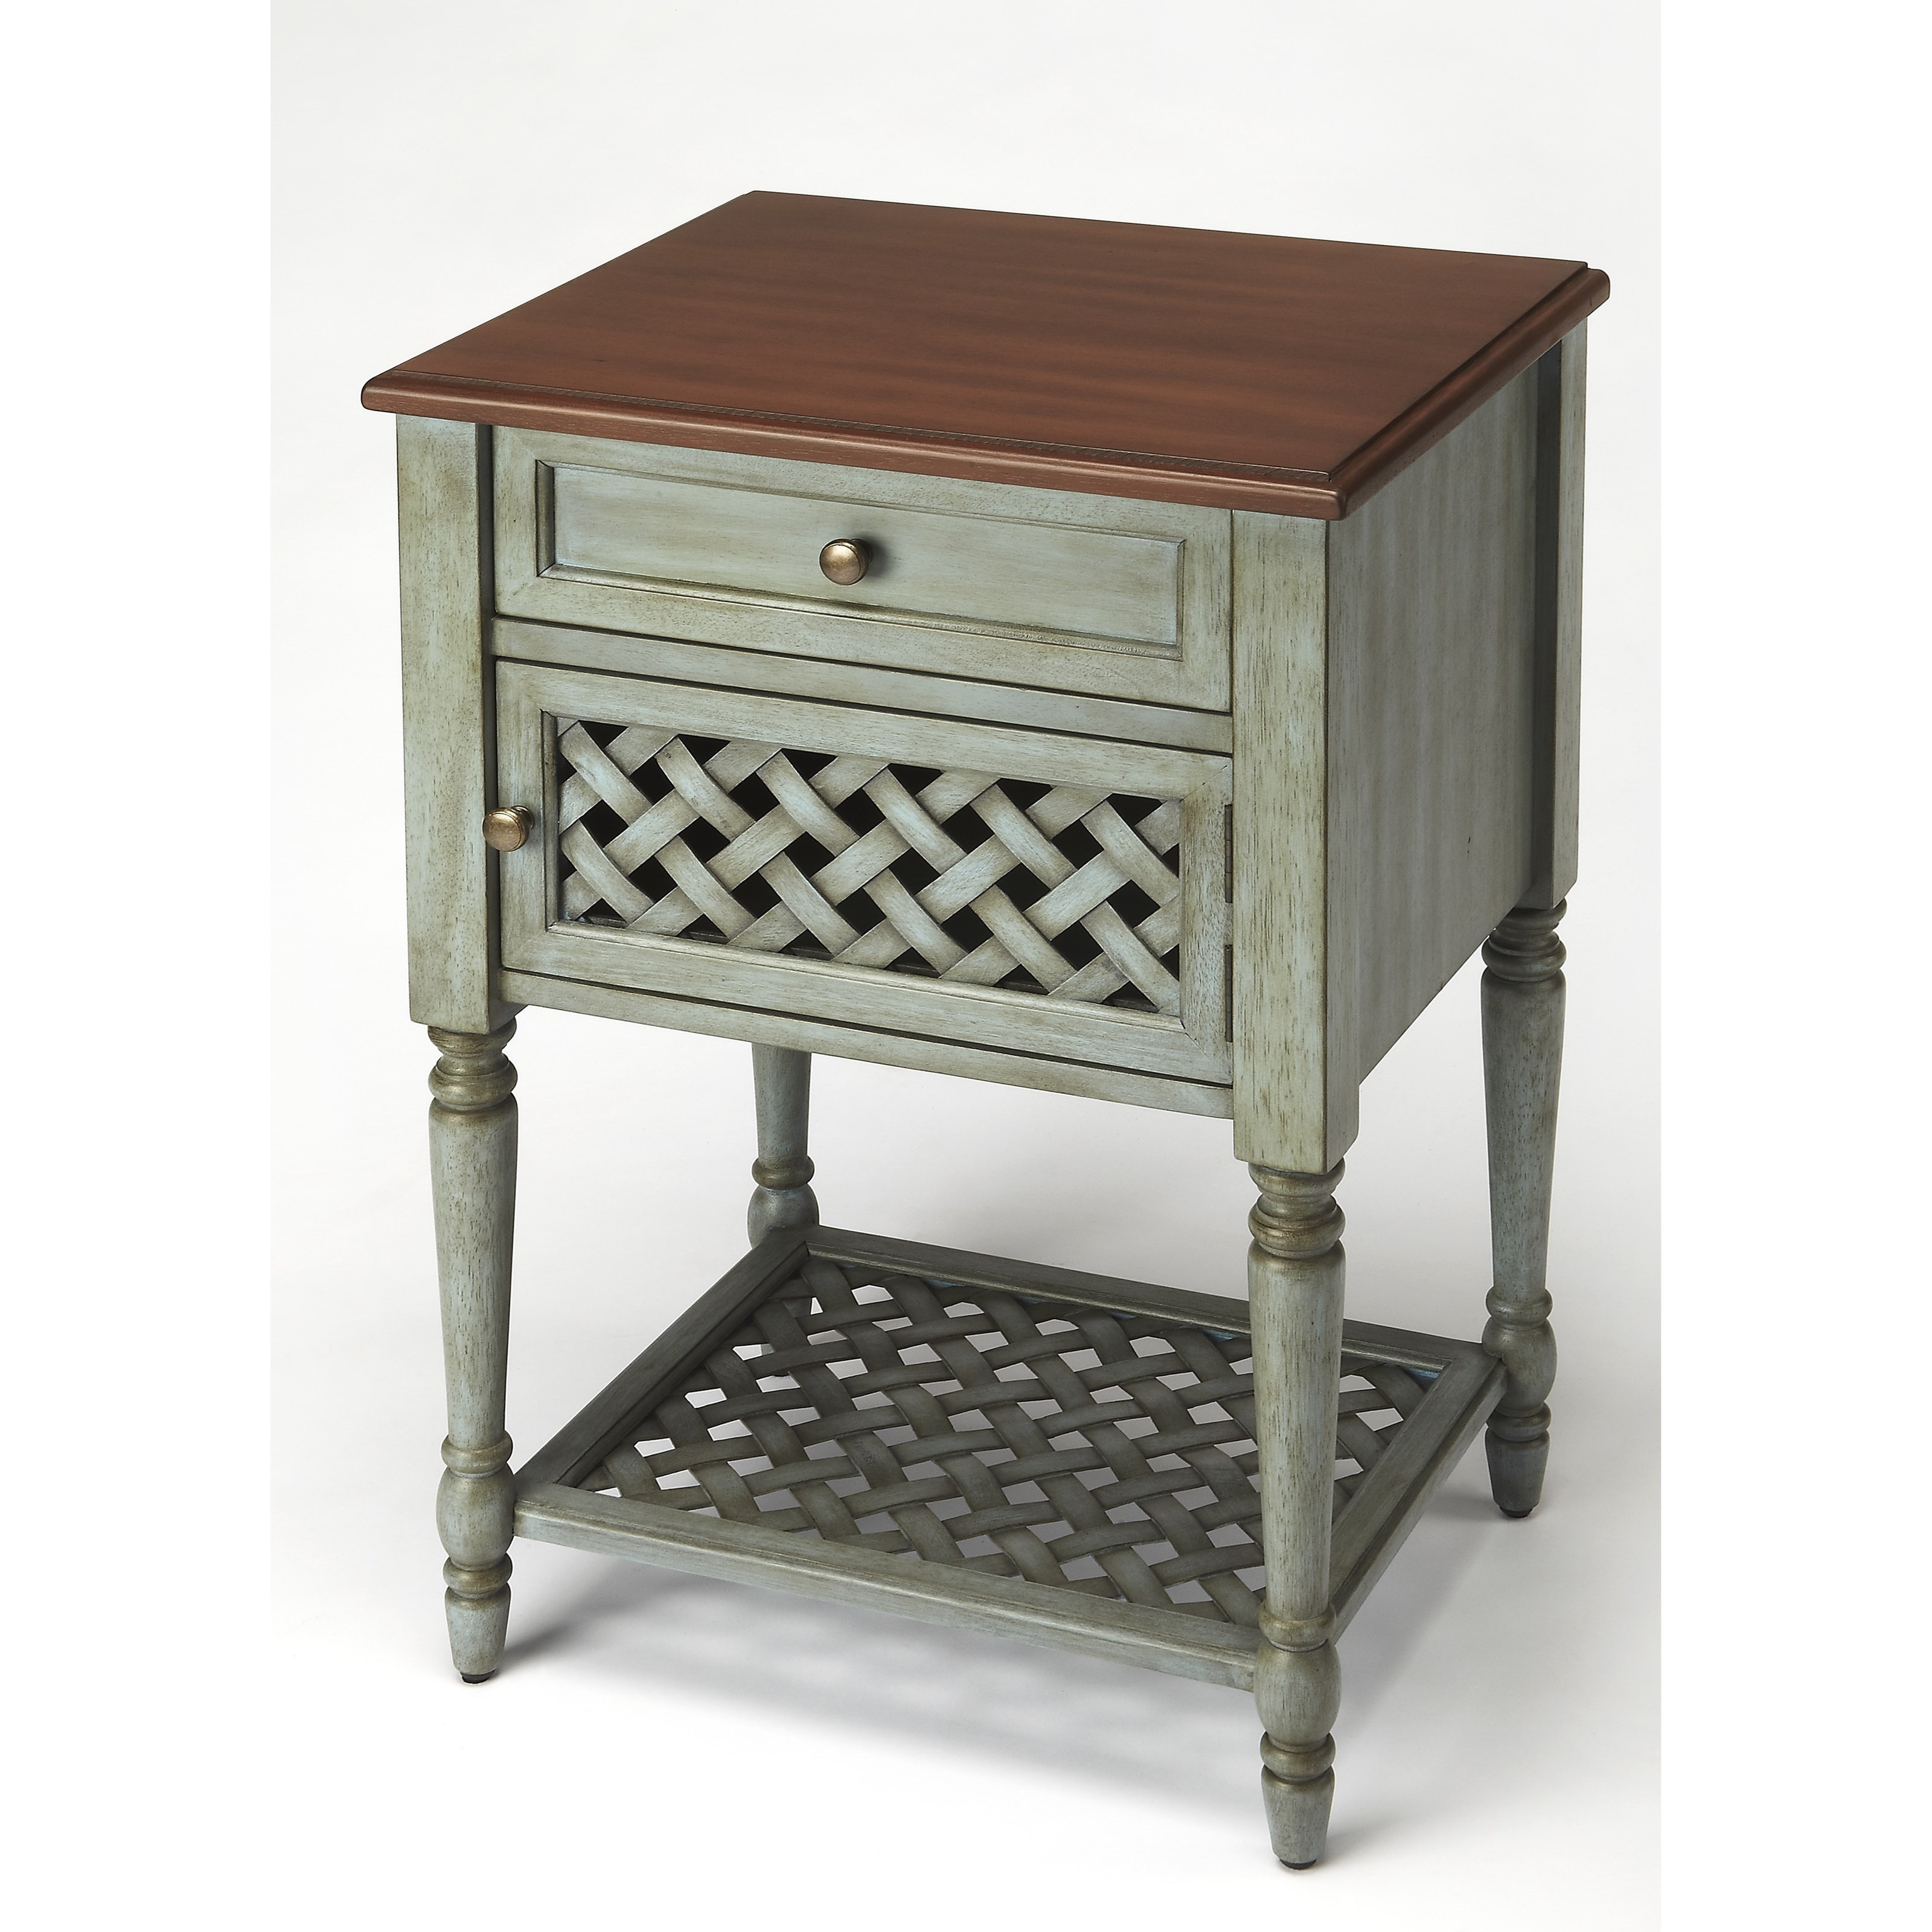 Artist's Originals End Table by Butler Specialty Company at Mueller Furniture